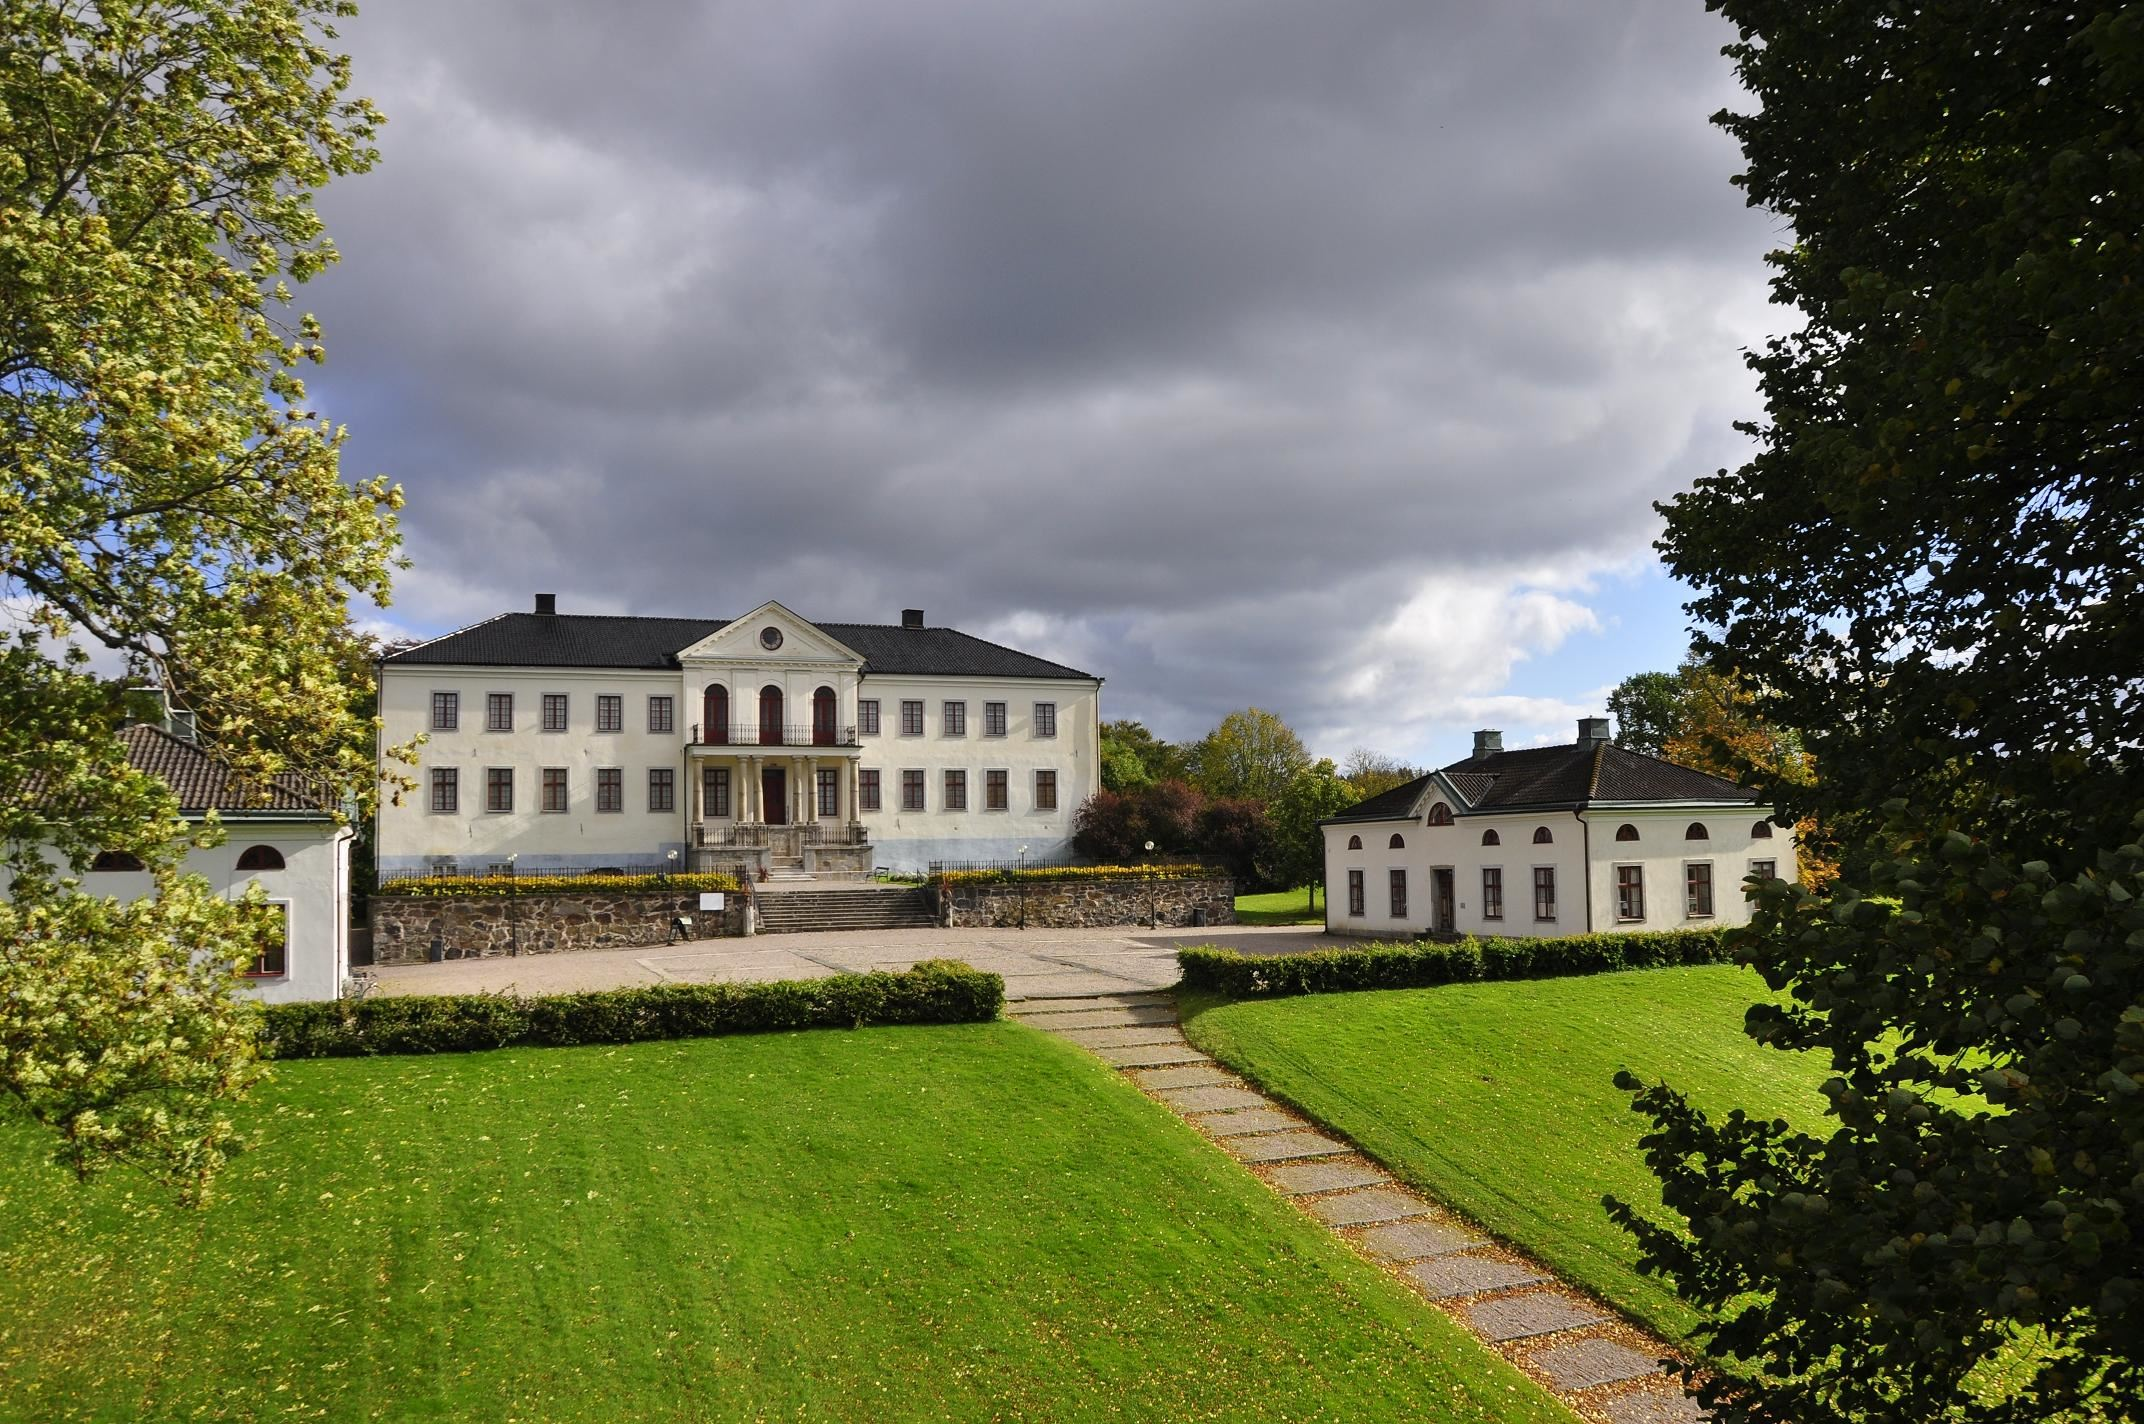 Nääs Slott, The north wing, Floda